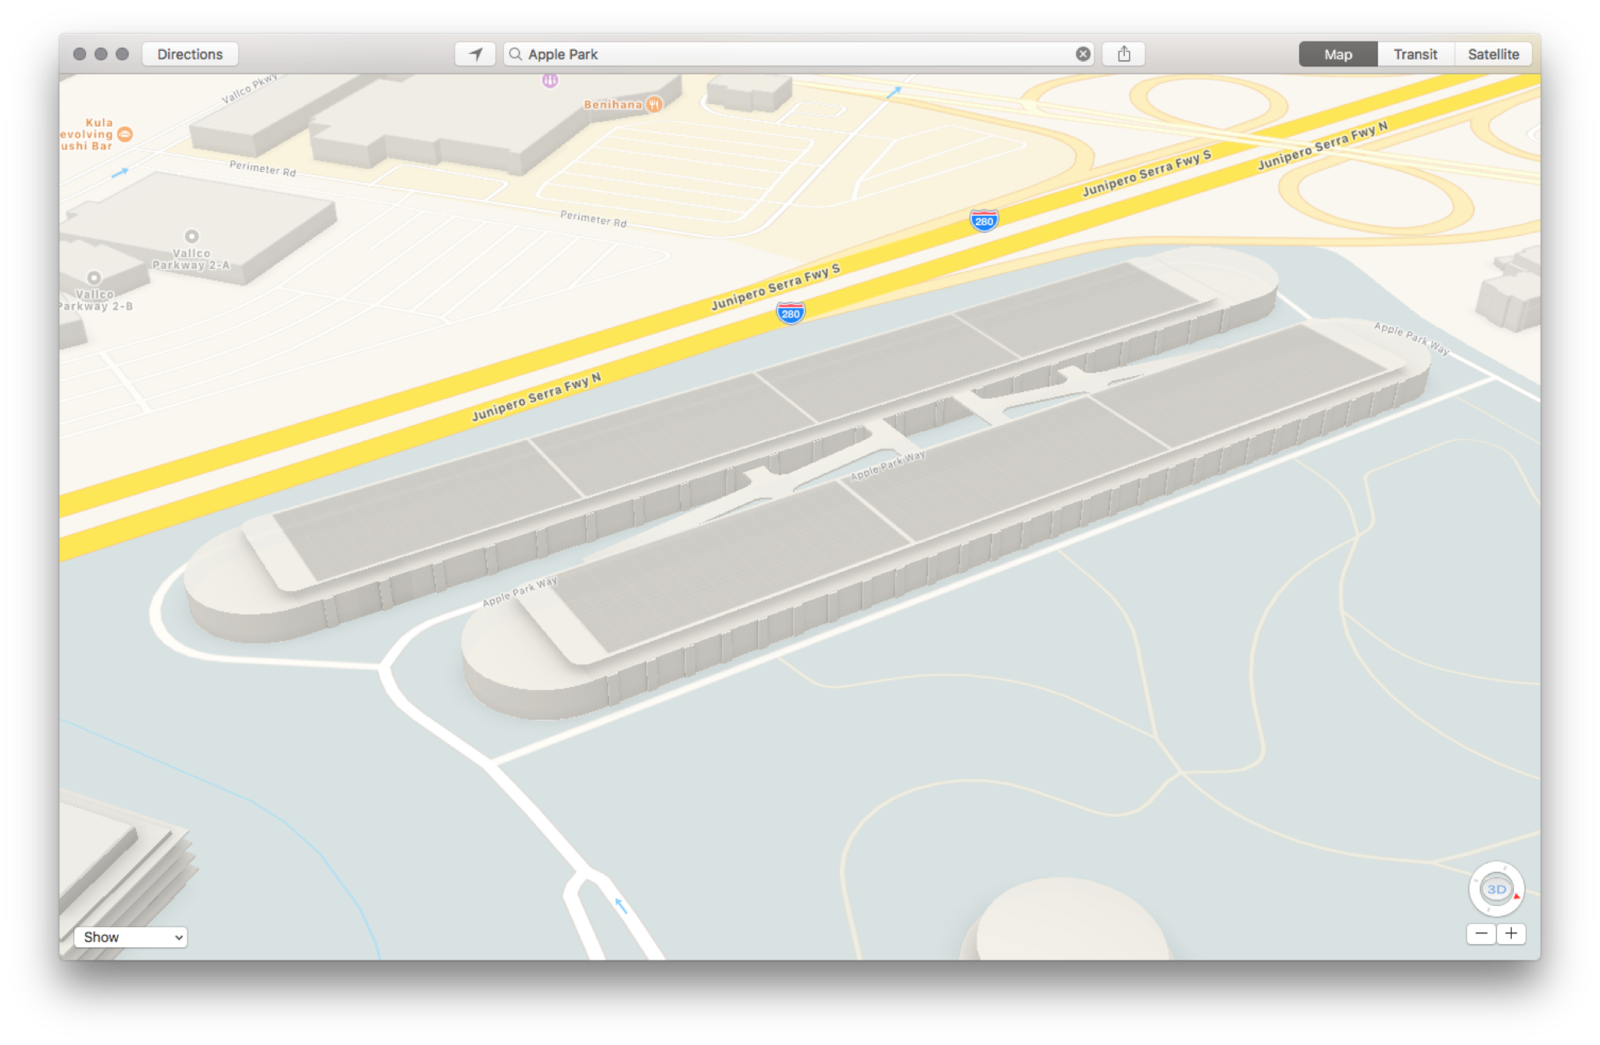 3D renderings of the new Apple Park campus in Apple Maps